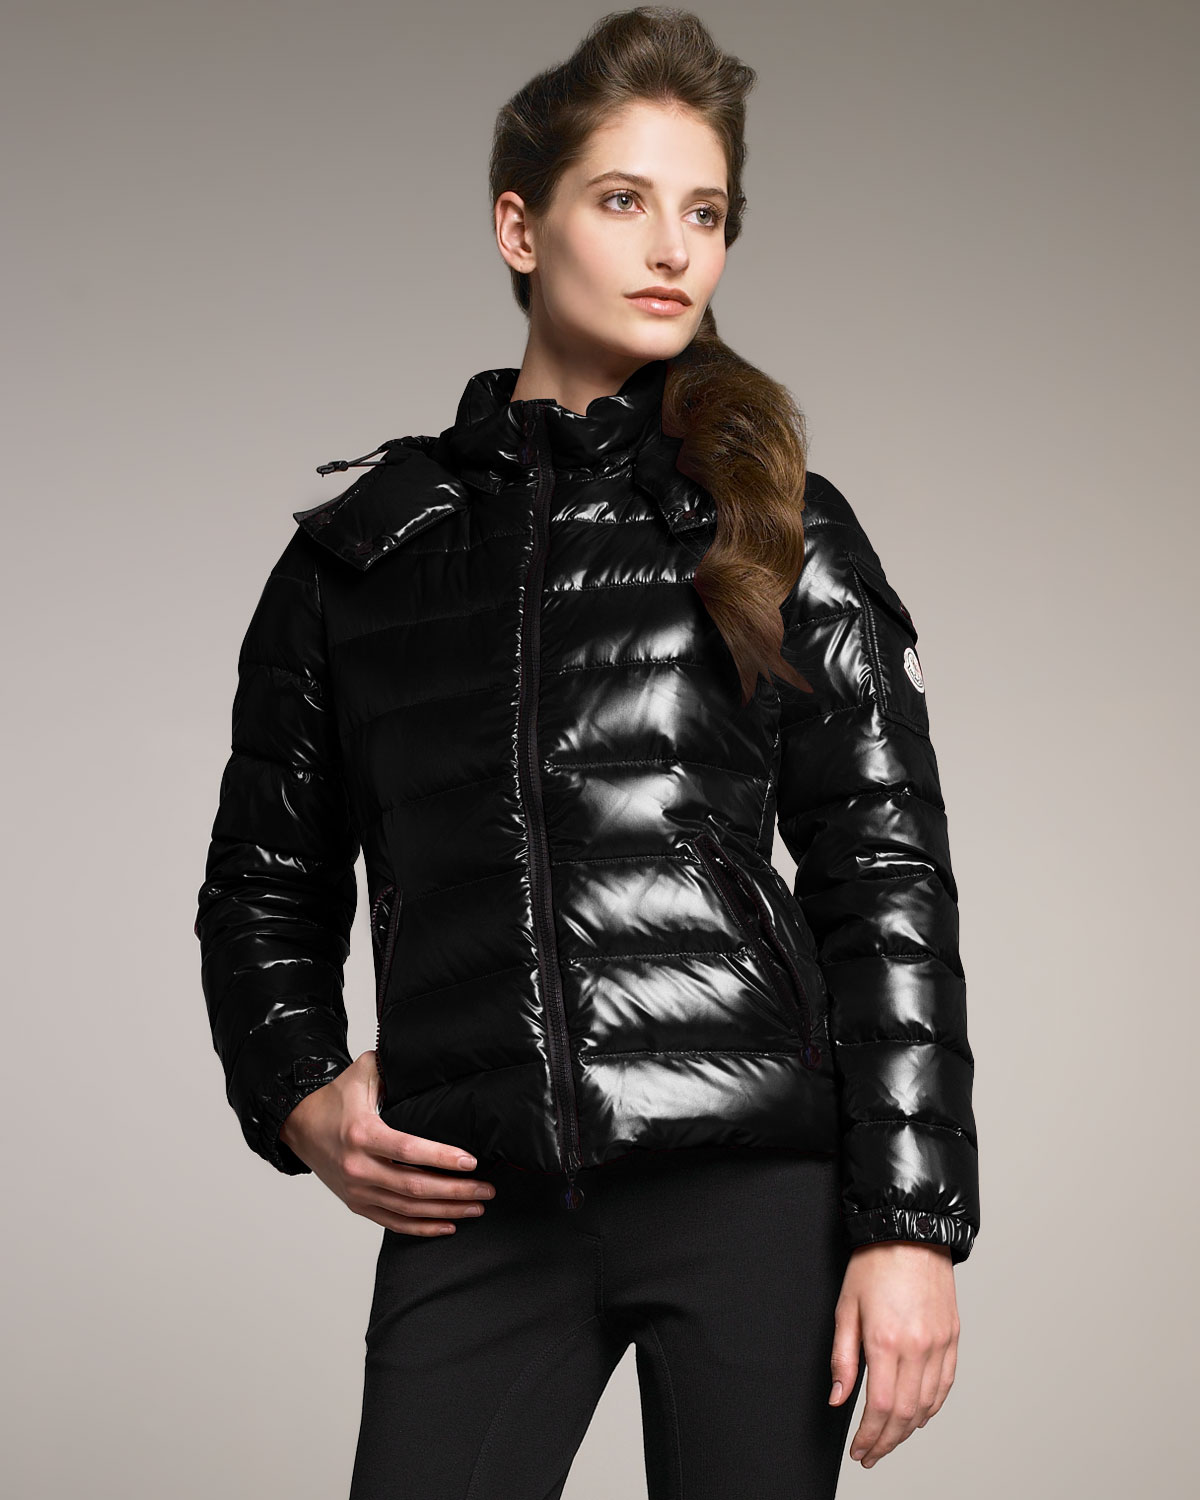 moncler black puffer jacket women's